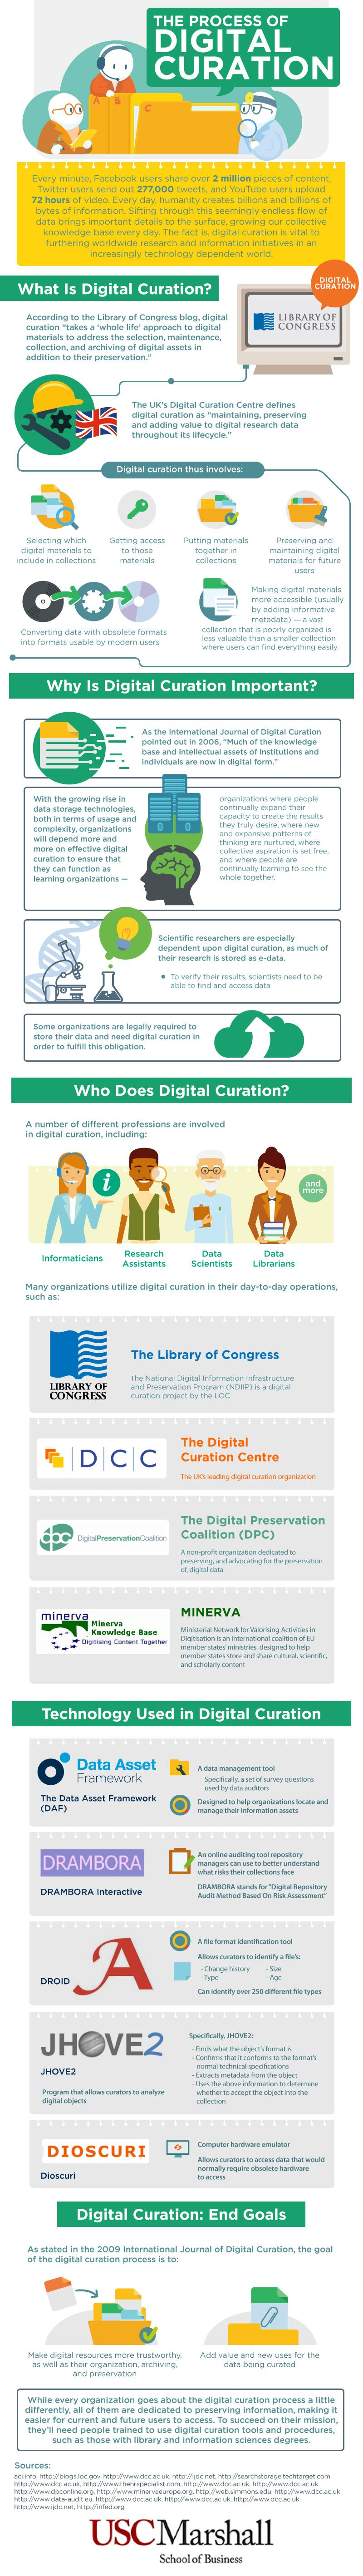 The Process Of Digital Curation